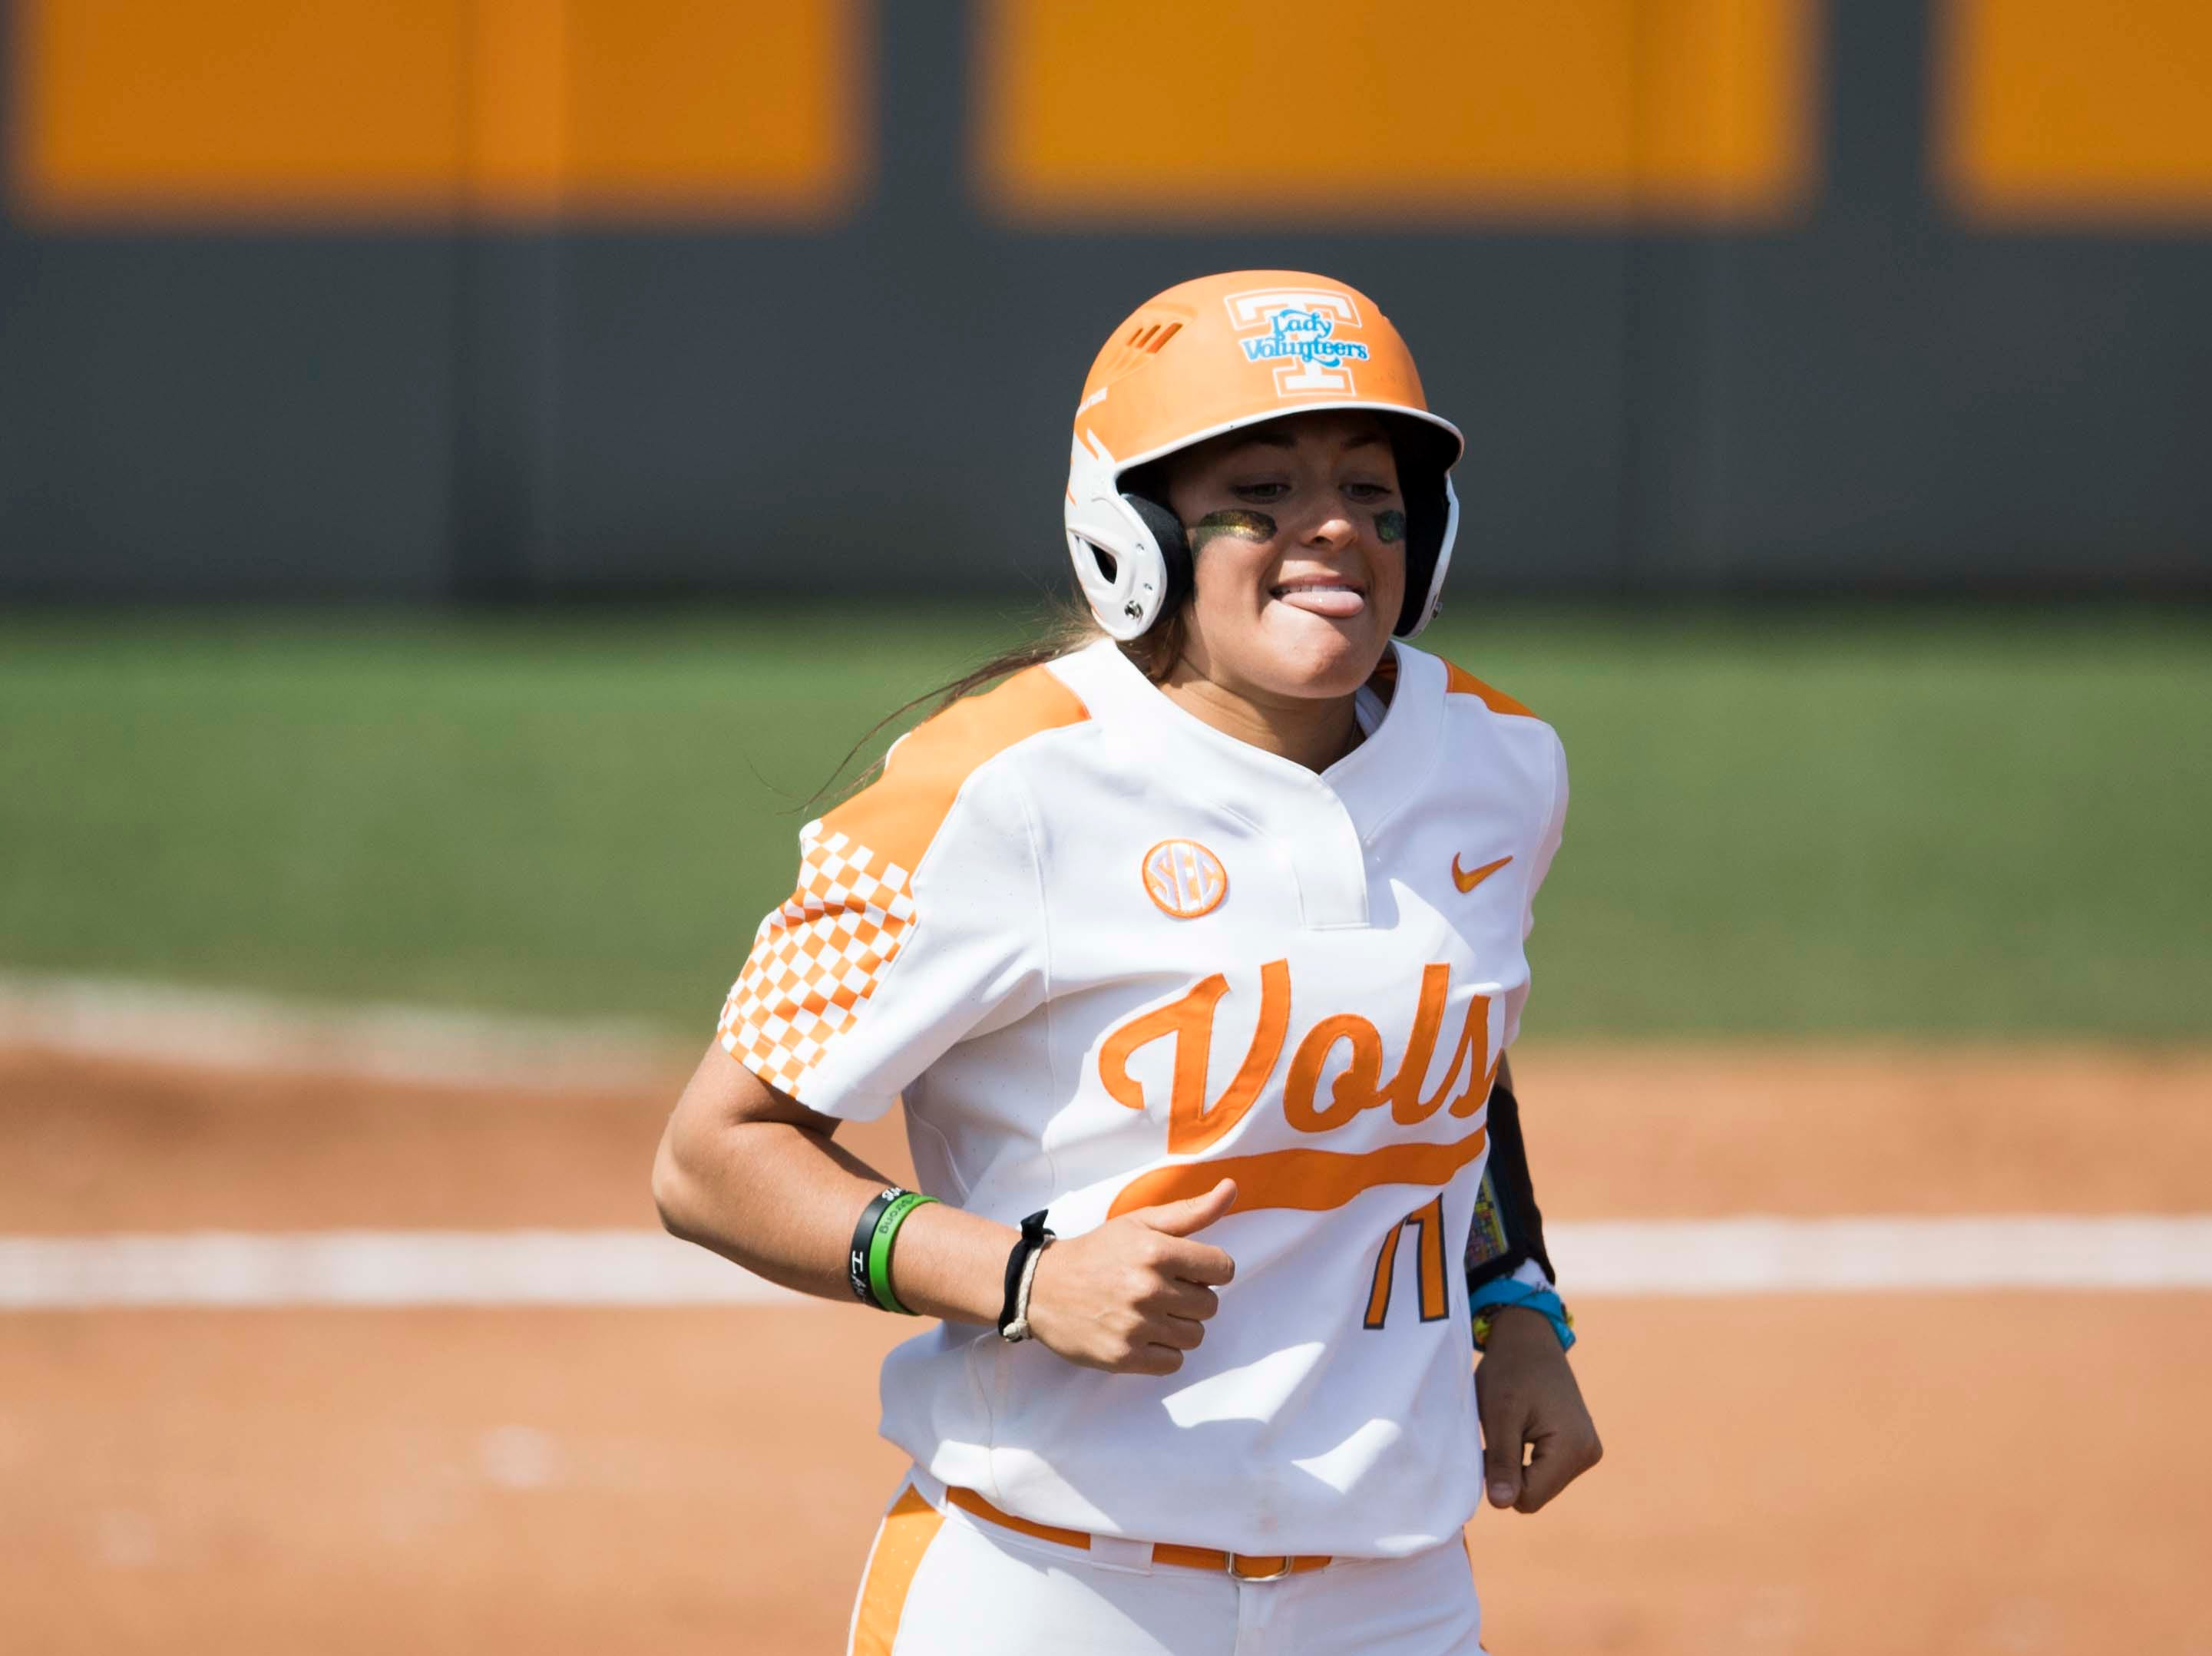 Tennessee infielder Gracie Osbron (77) reacts to getting hit by a pitch as she takes first during a Lady Vols softball game against Arkansas at Sherri Parker Lee stadium on University of Tennessee's campus in Knoxville Sunday, March 24, 2019. The Lady Vols defeated Arkansas.